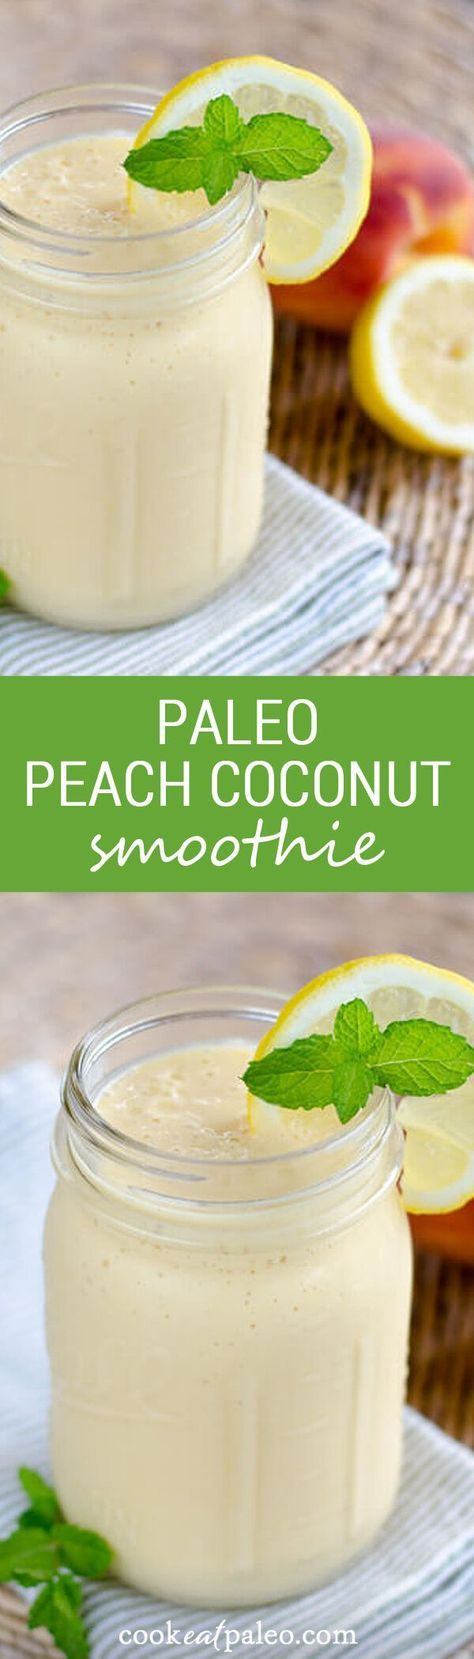 This paleo peach coconut smoothie is creamy, sweet and delicious without any dairy or added sugar. Fresh summer peaches make all the difference. ~ http://cookeatpaleo.com